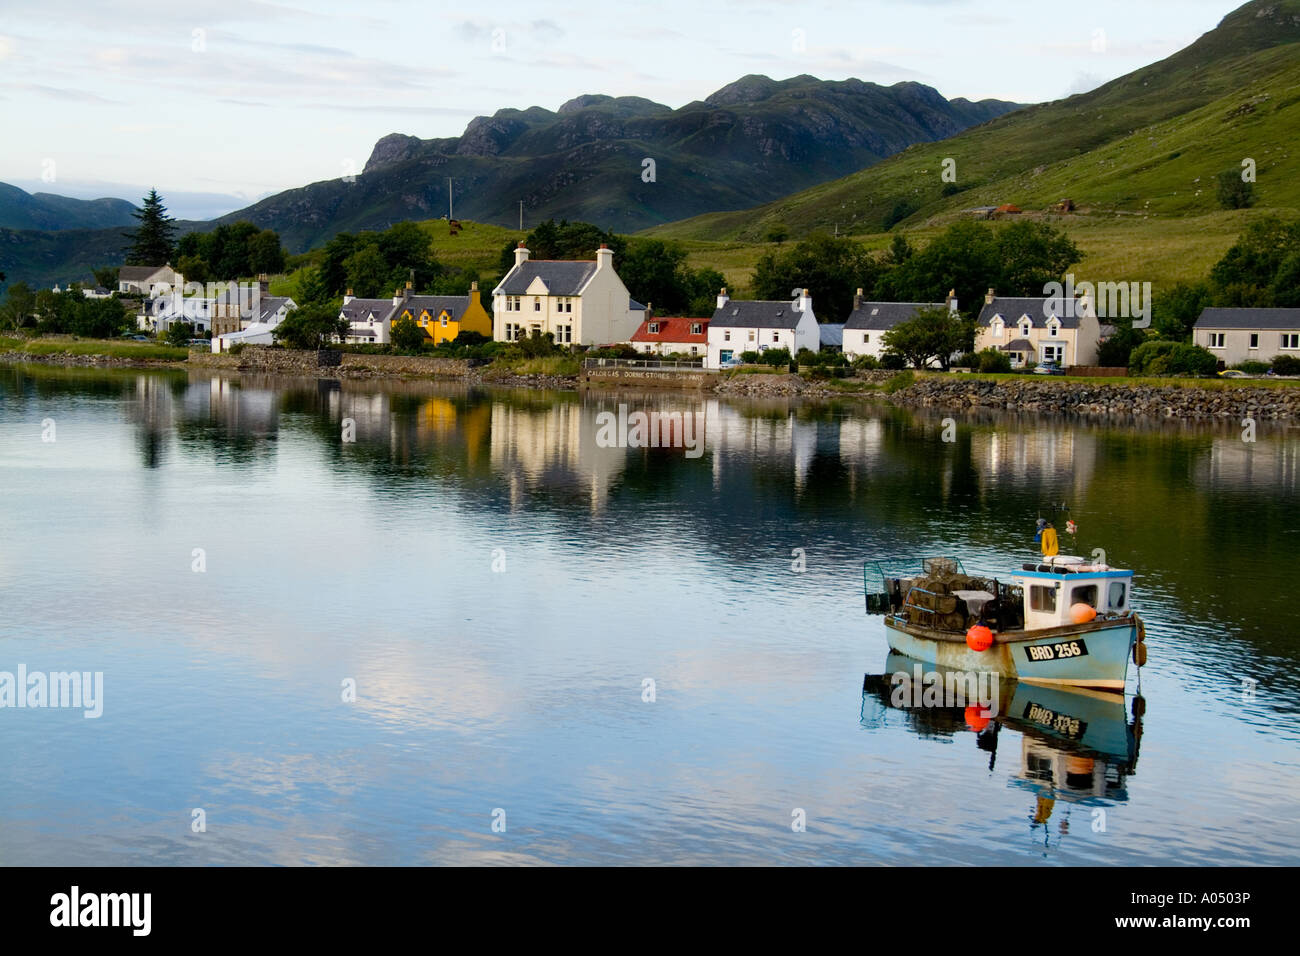 Beautiful photo of small village of Dornie with refections and boat in Western Highlands Scotlands - Stock Image